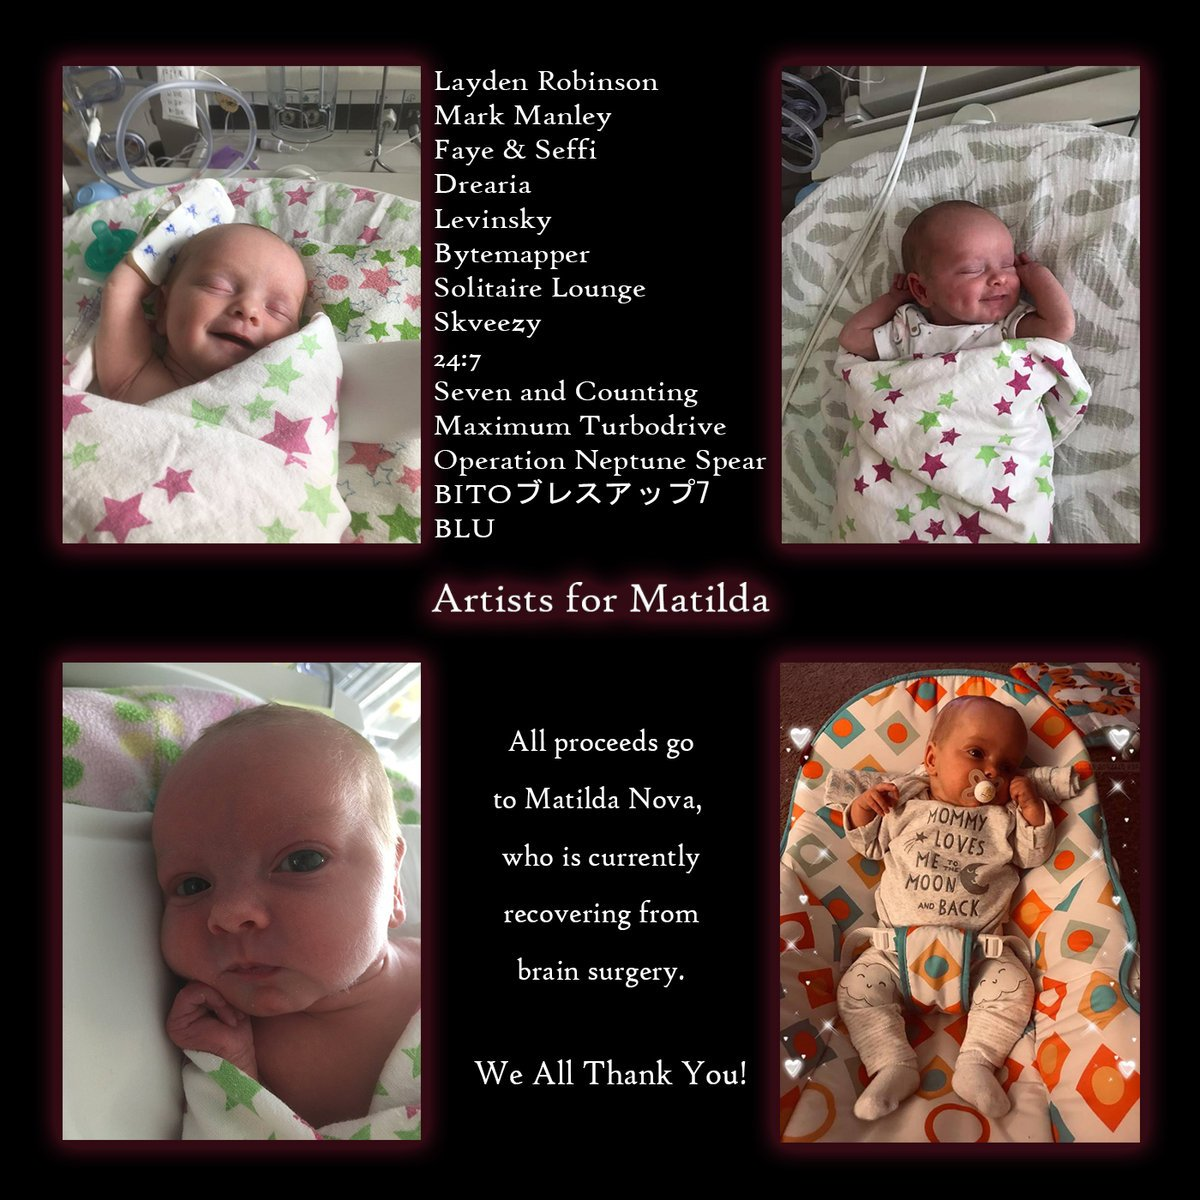 25% of the way towards the goal of 200 downloads of the #music compilation for my daughter, #Matilda recovering from brain surgery. Please support by purchasing a copy of these wonderful #songs for an amazing cause by clicking here. https://laydenrobinson.bandcamp.com/album/artists-for-matilda…  #SaturdayMorning